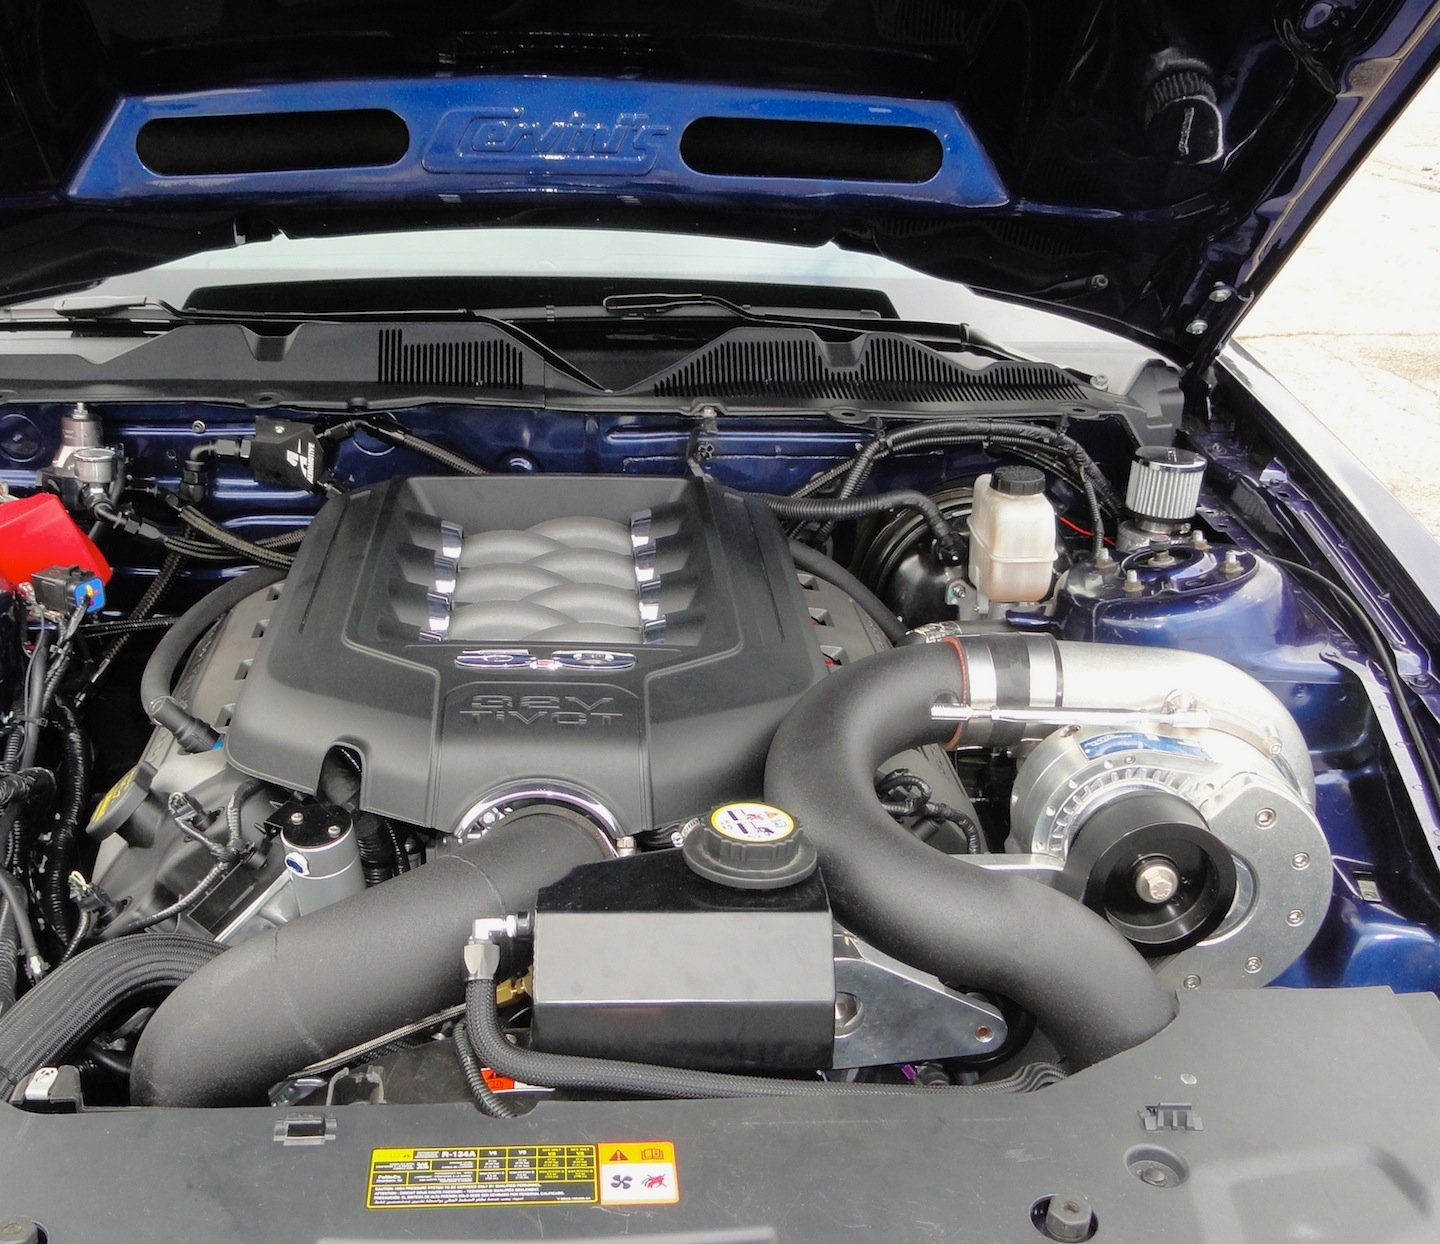 ProCharger Unveils 2011 5.0 Mustang Tuner Kits & Intercooled Stage II Systems at SEMA-procharged_evolution_2011_mustang.jpg